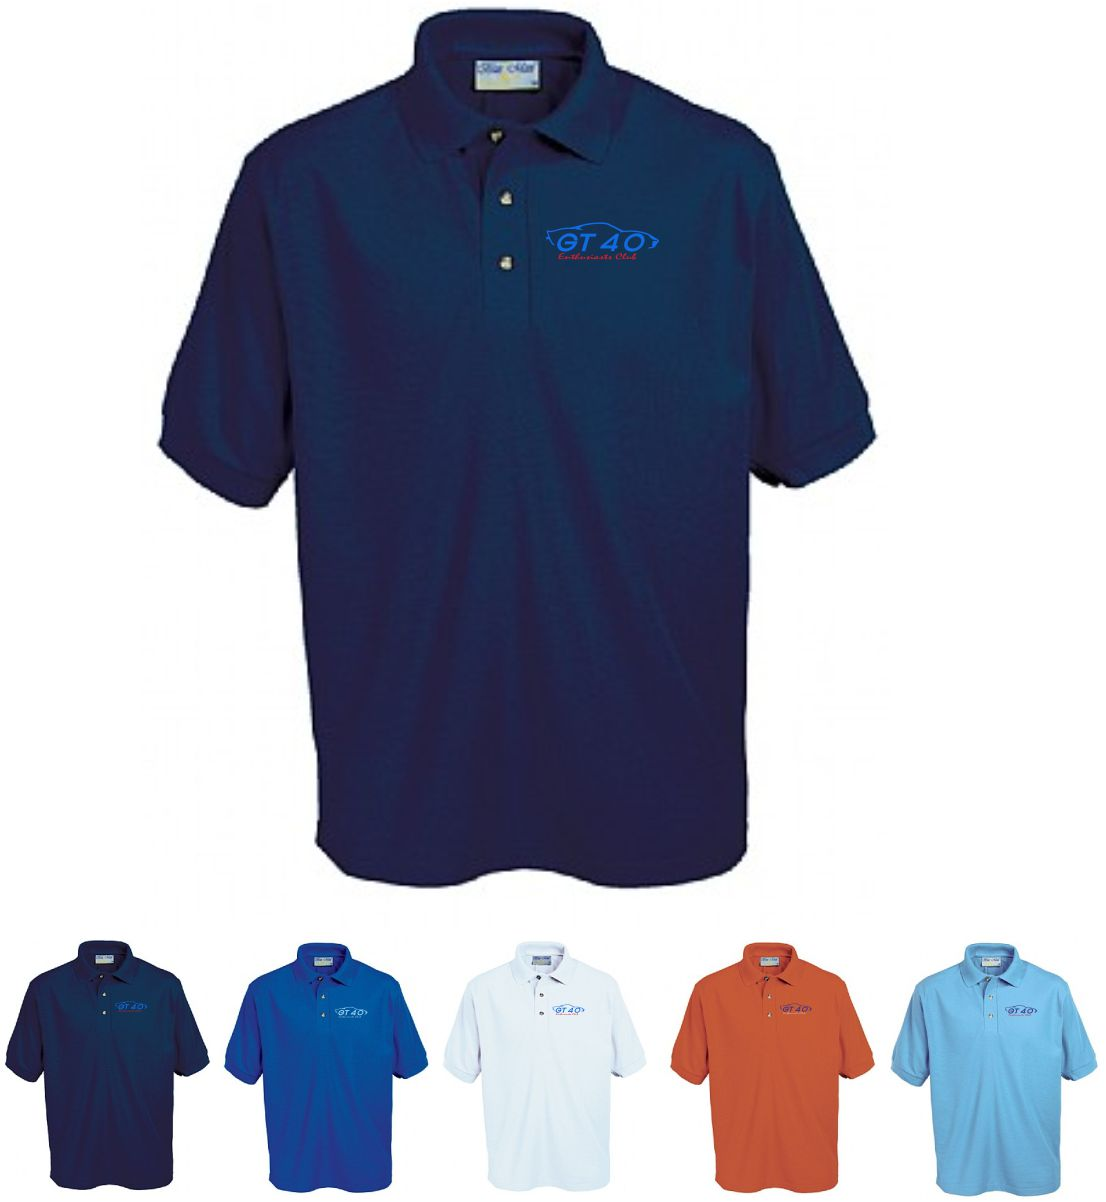 GT40 Enthusiasts Polo Shirt